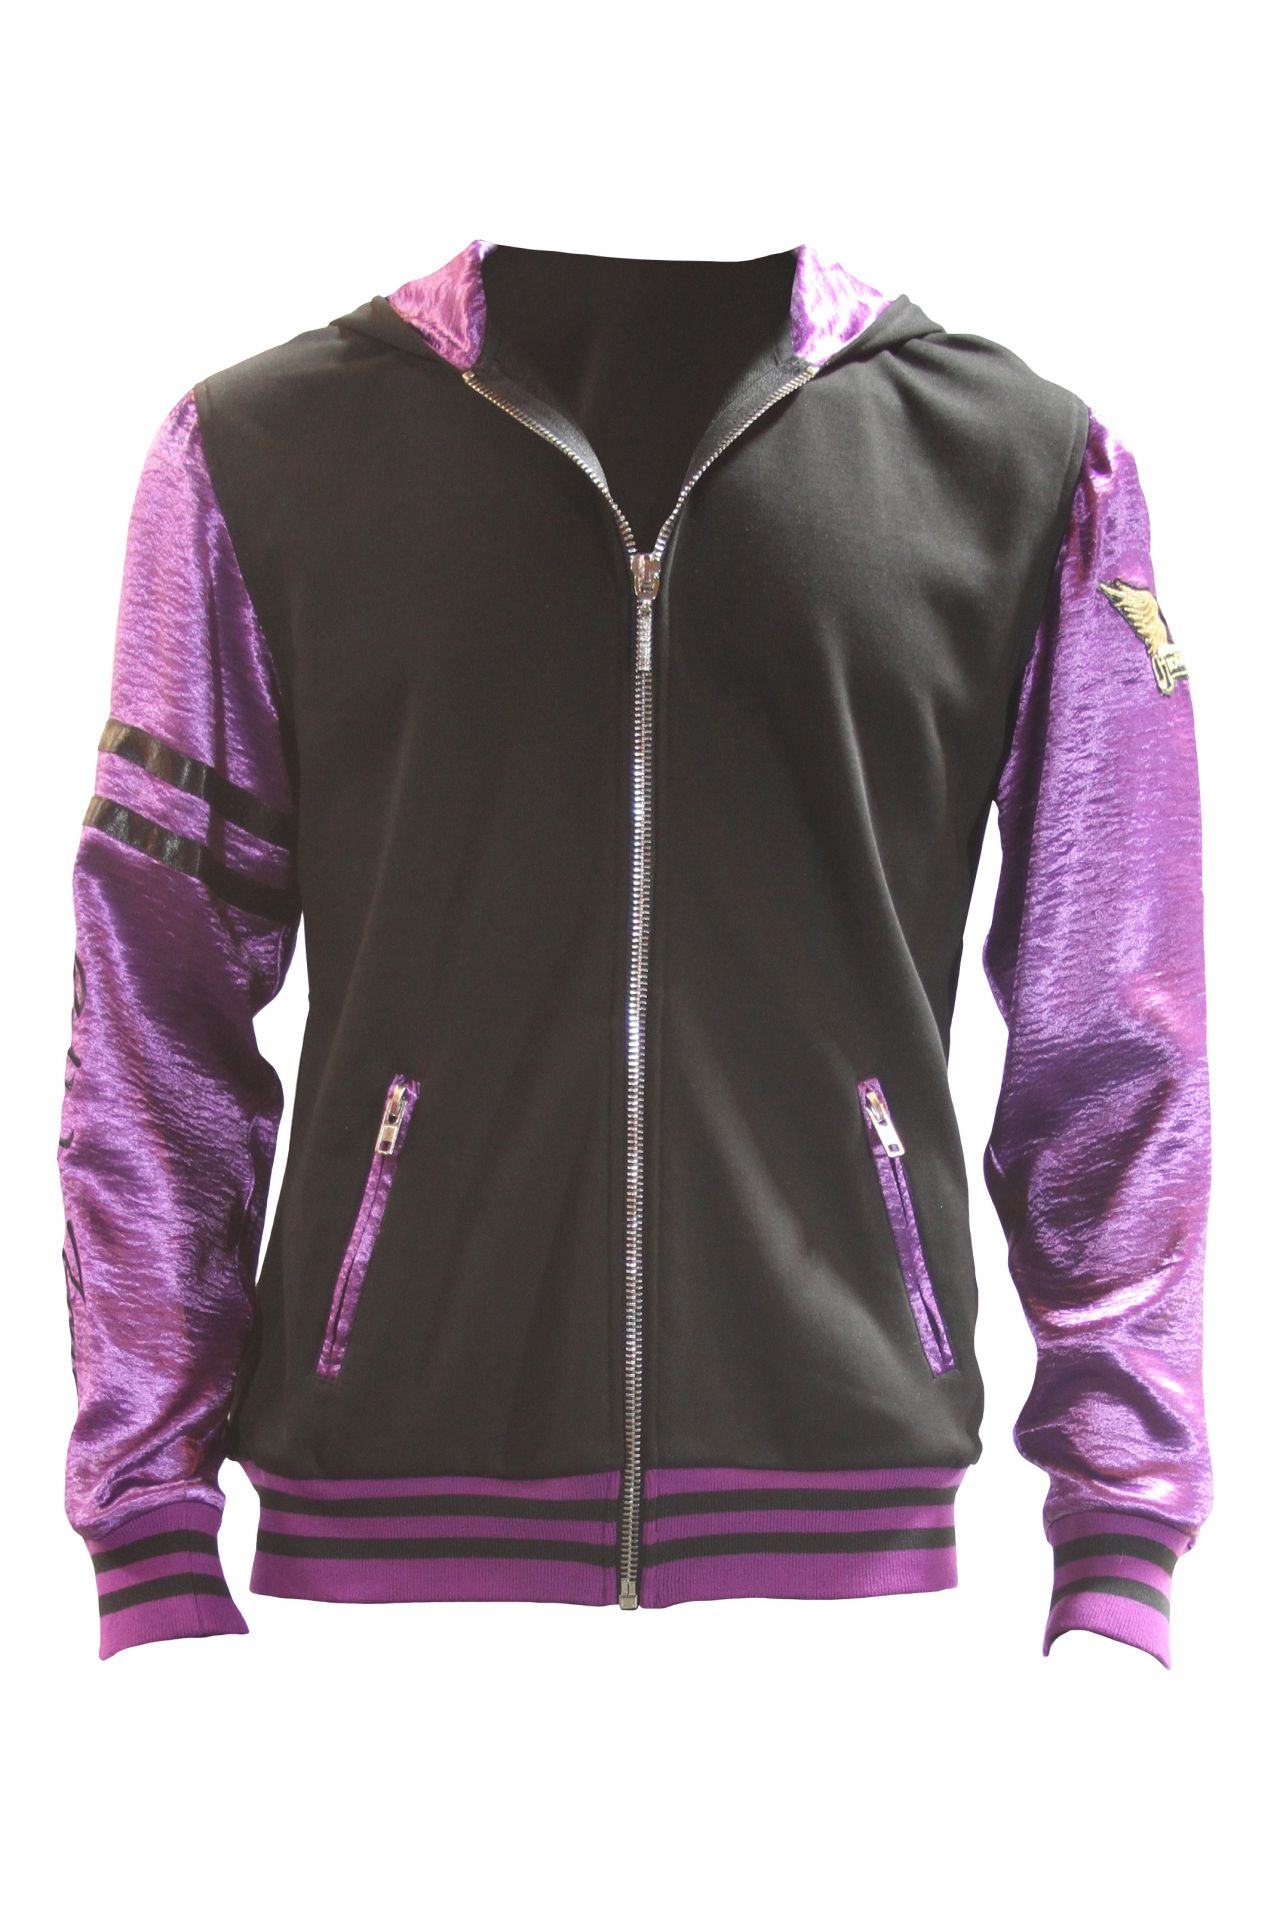 CLASSIC TRACK JACKET IN BLACK AND PURPLE WITH CHIEF